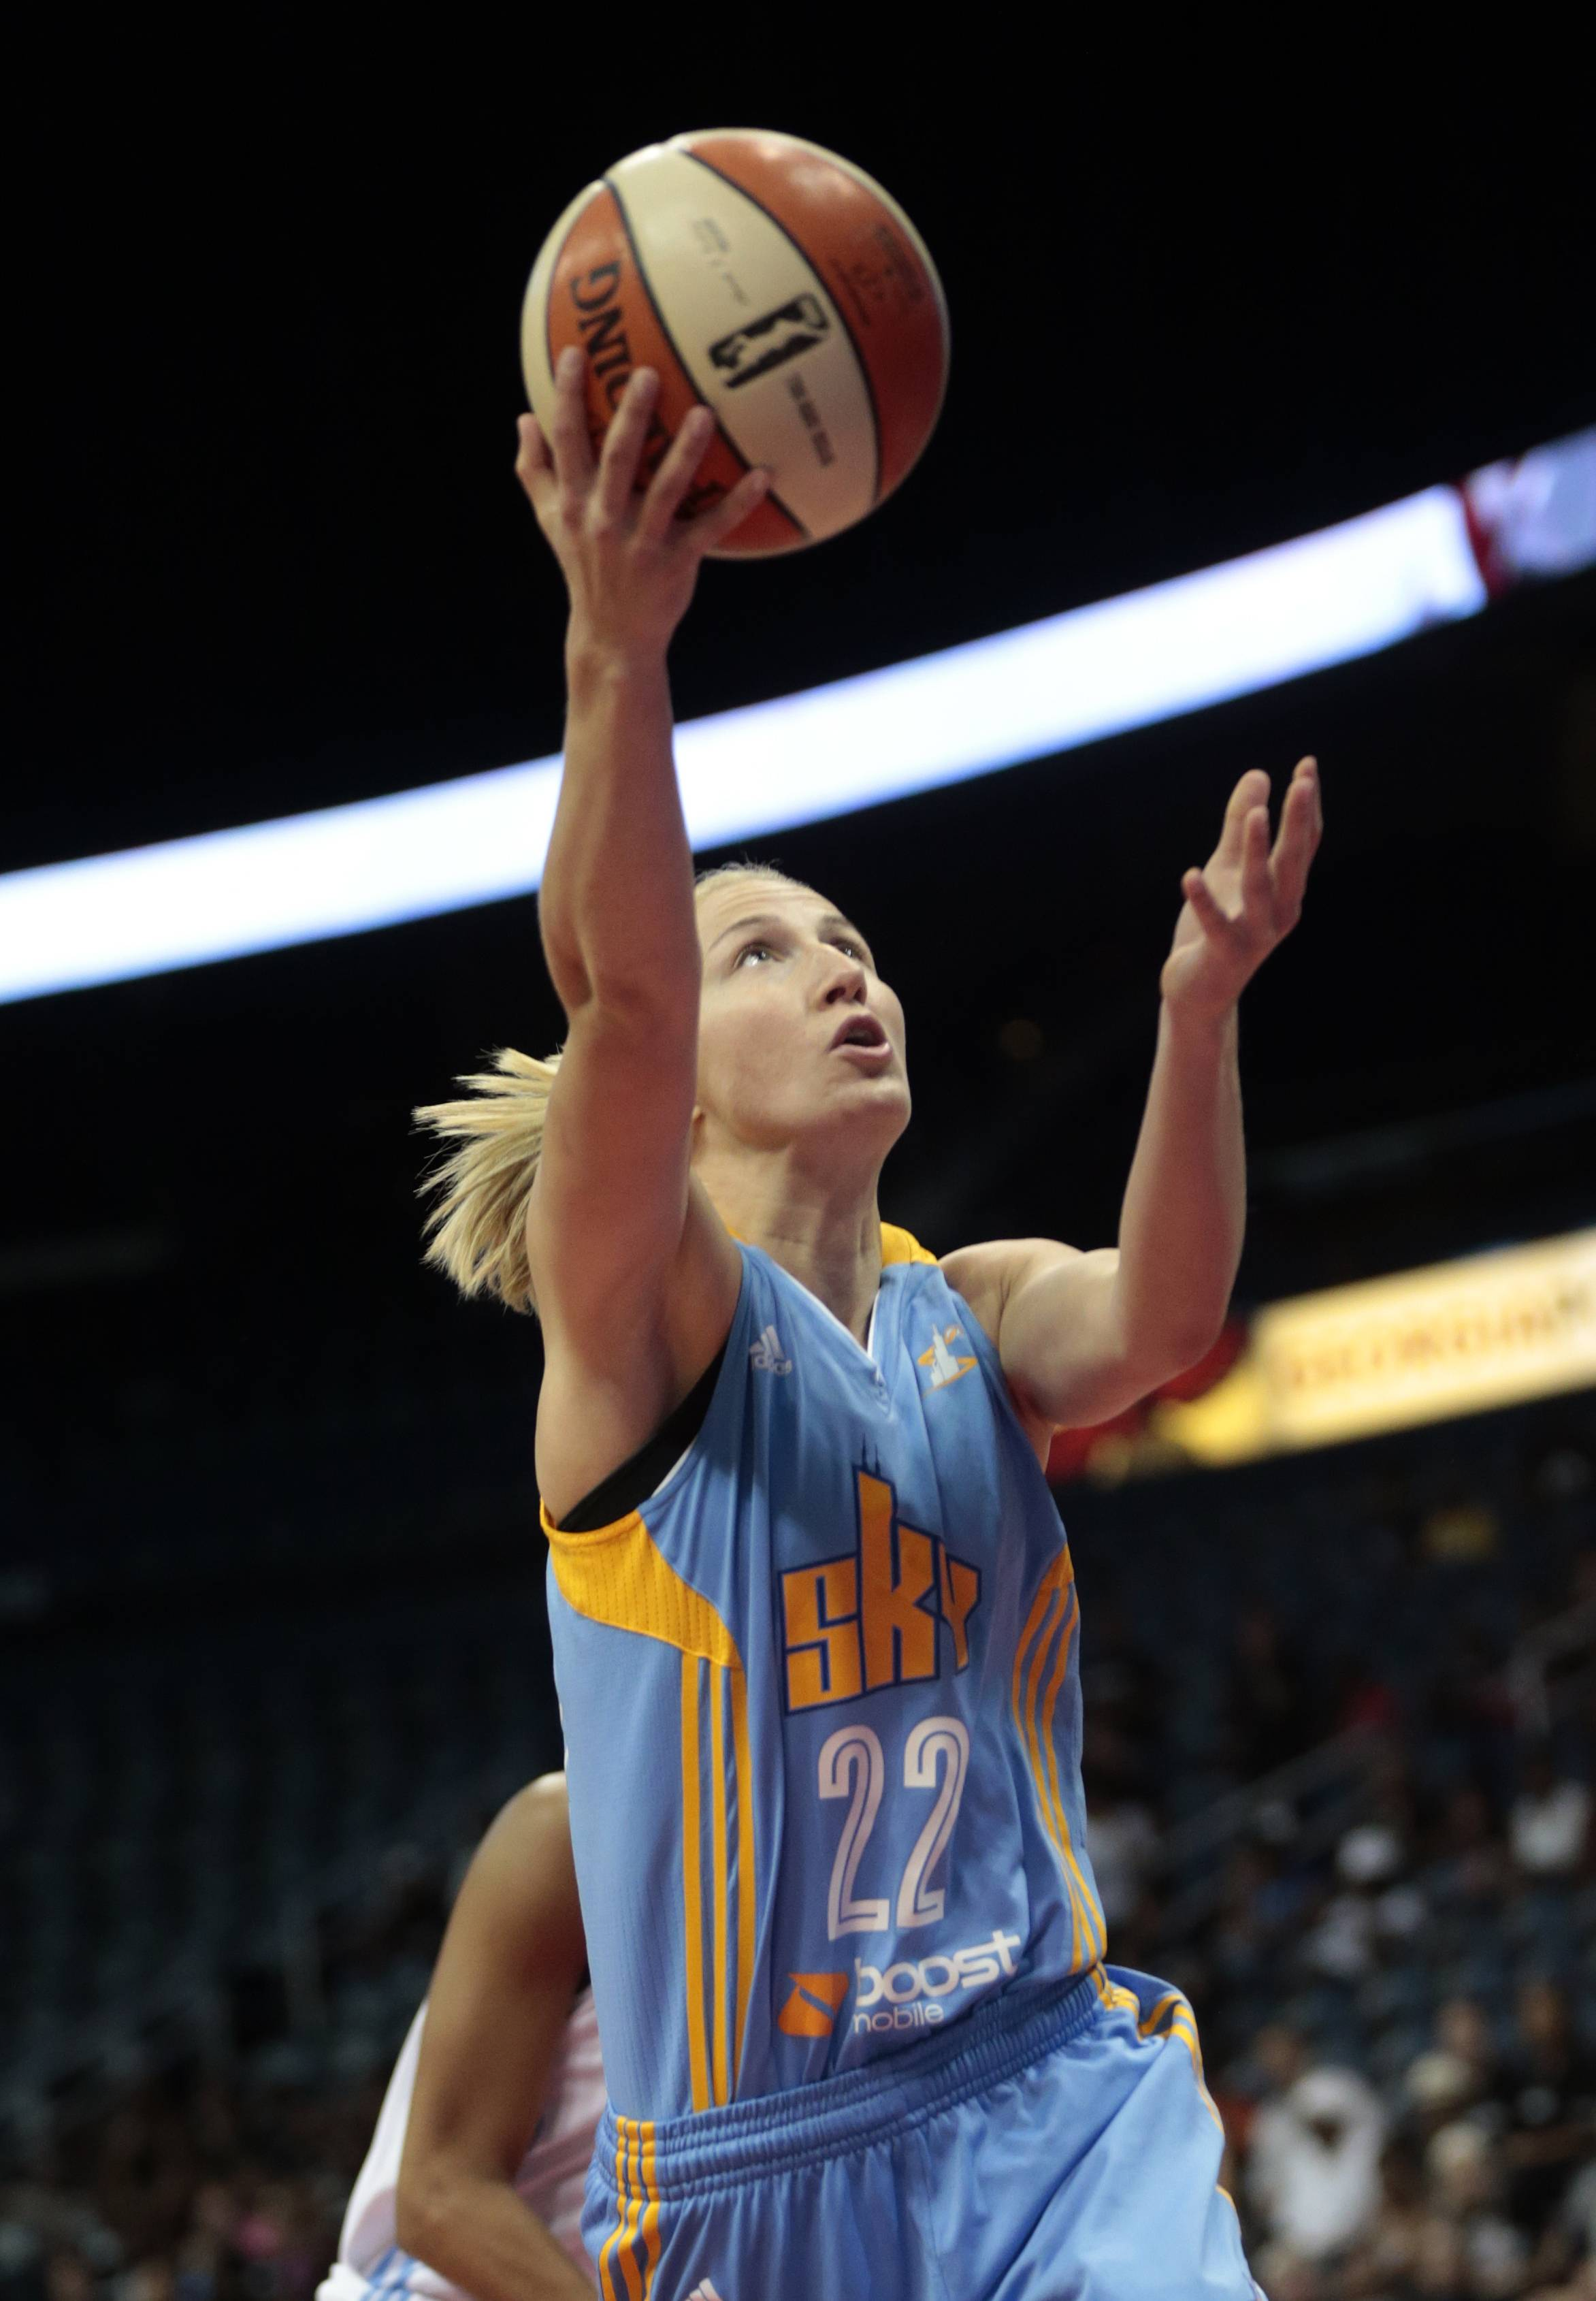 Chicago Sky guard Courtney Vandersloot (22) goes up for a shot against the Atlanta Dream during Game 1 of the WNBA basketball Eastern Conference semifinals Friday in Atlanta.